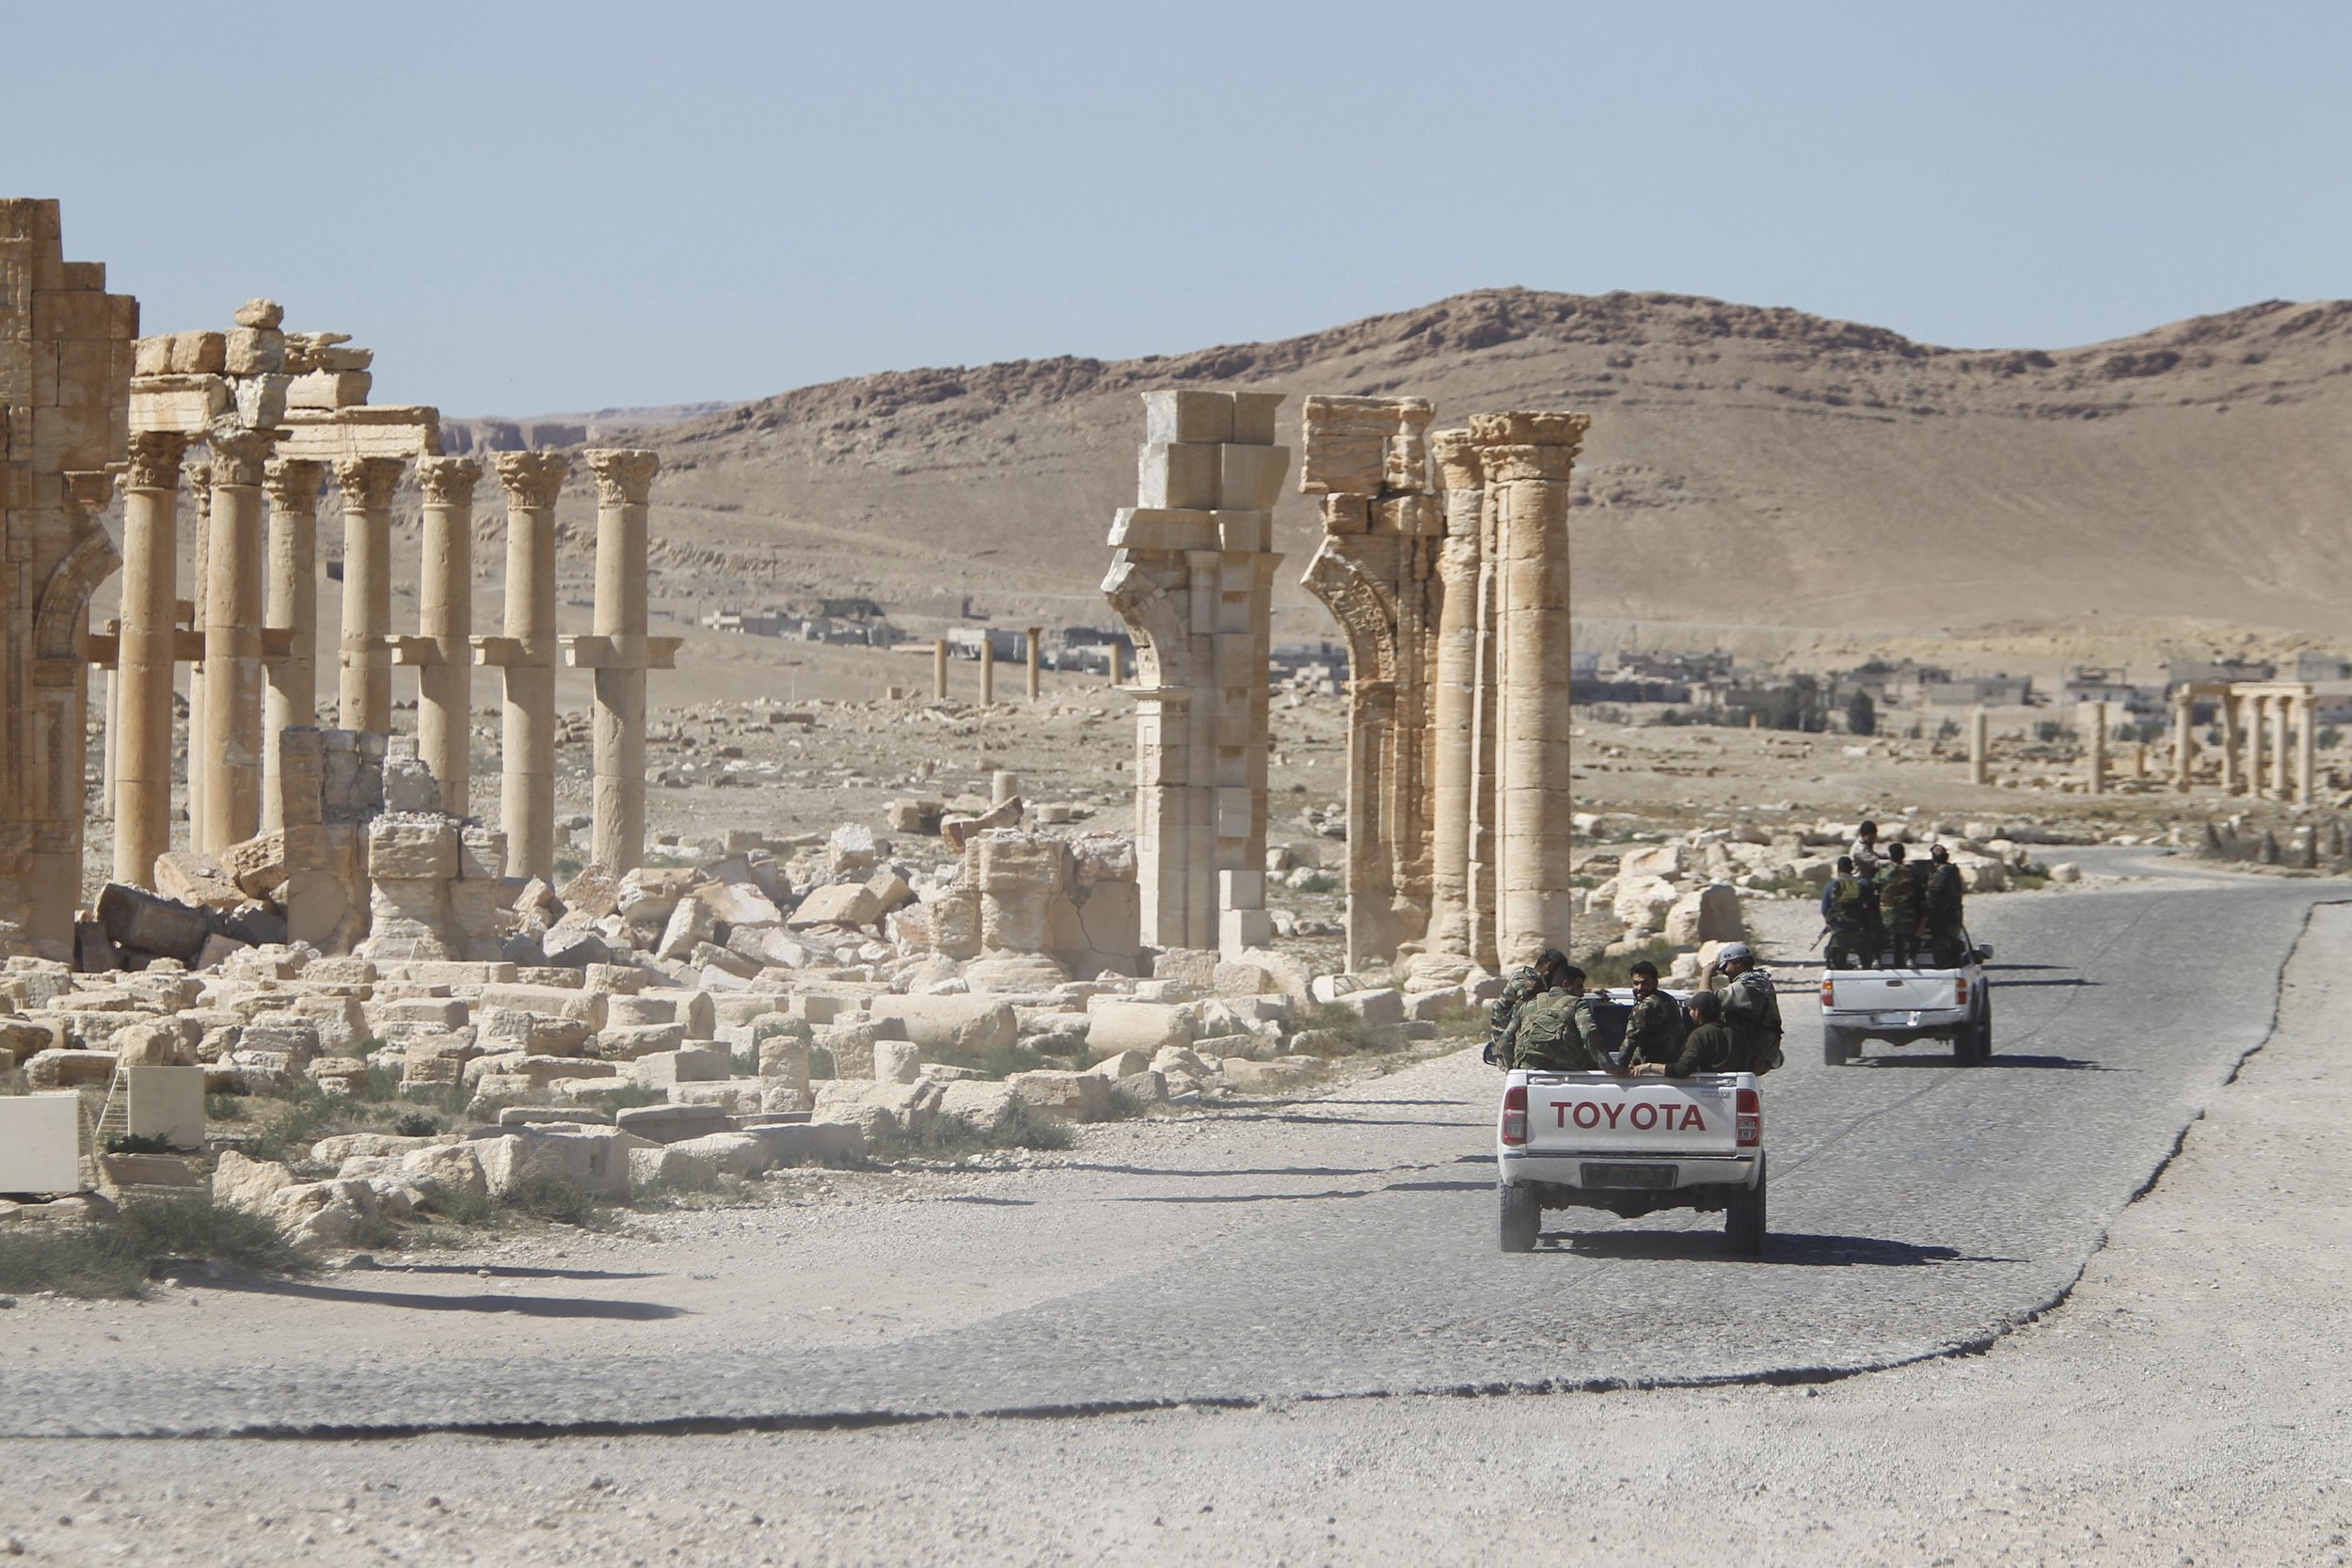 Syrian army soldiers drive past the ruins of the Arch of Triumph in the historic city of Palmyra, in Homs Governorate, Syria April 1, 2016. Photo by Reuters/Omar Sanadiki.